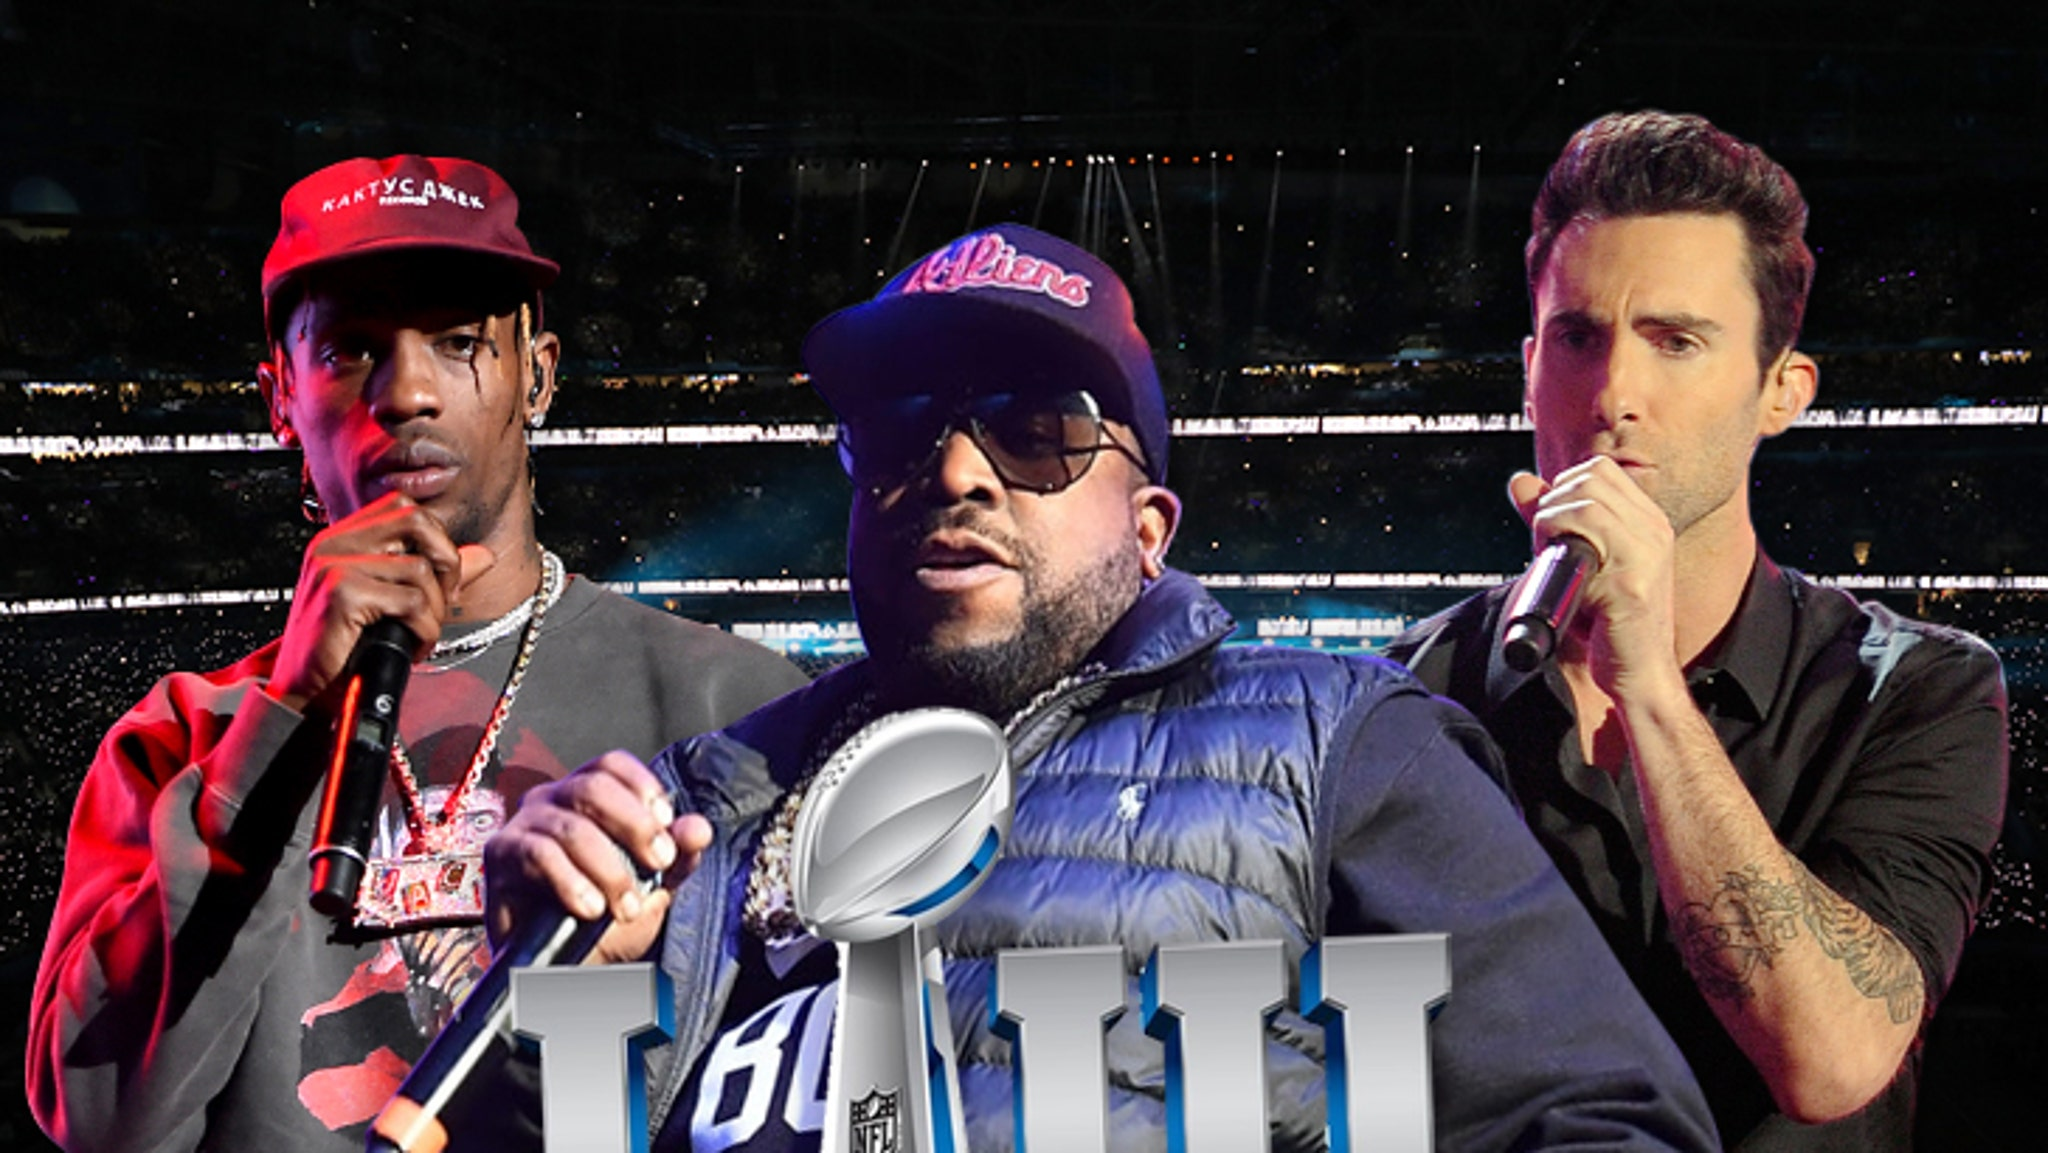 Super Bowl LIII Maroon 5 Confirms ... Trav & Big Boi in for Halftime Show